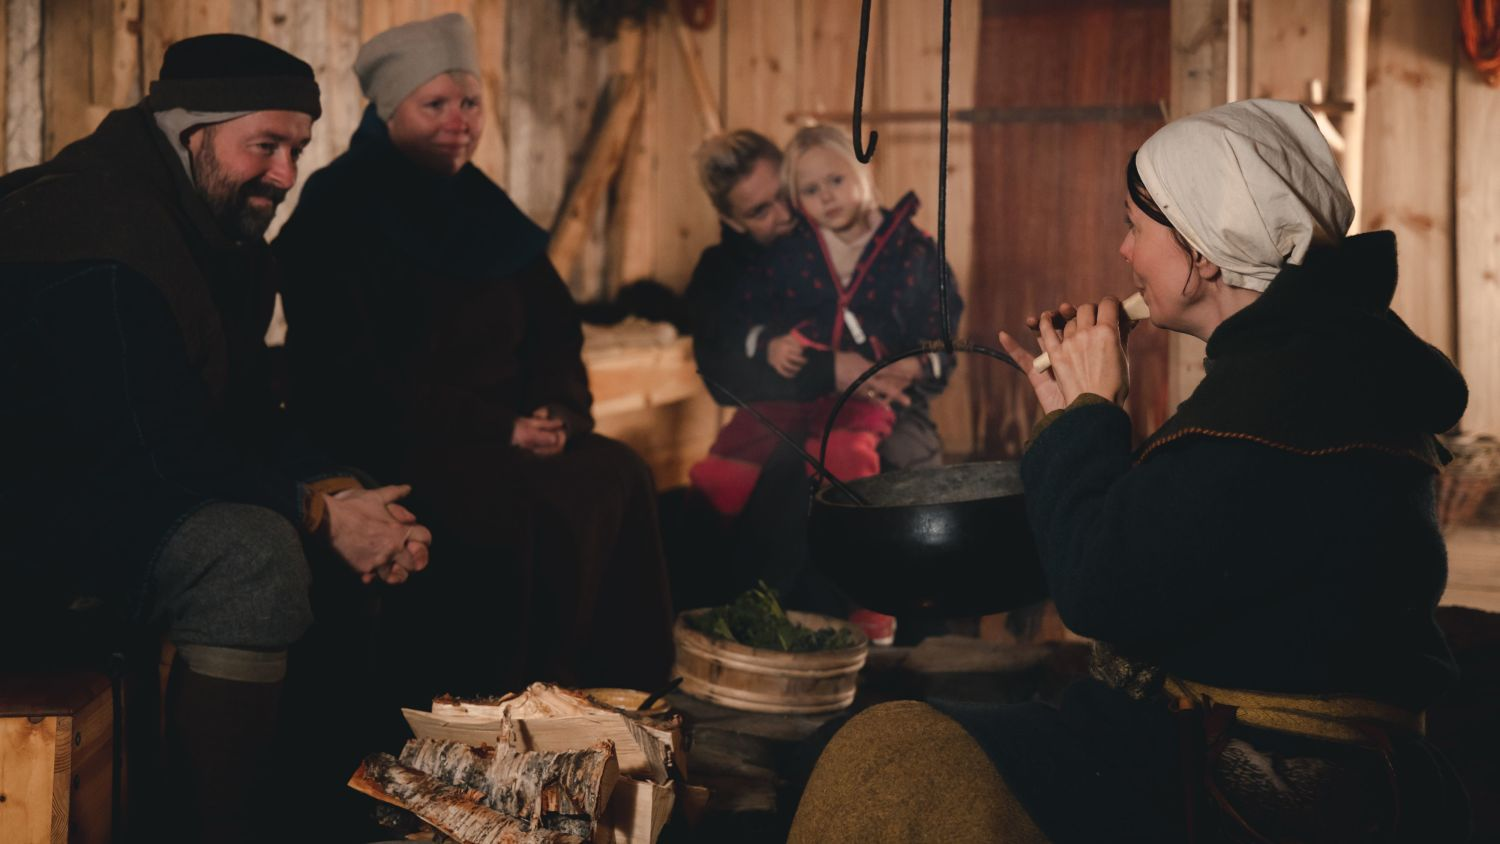 Family from the old days at Trondenes medieval farm. Photo: Andre Askeland